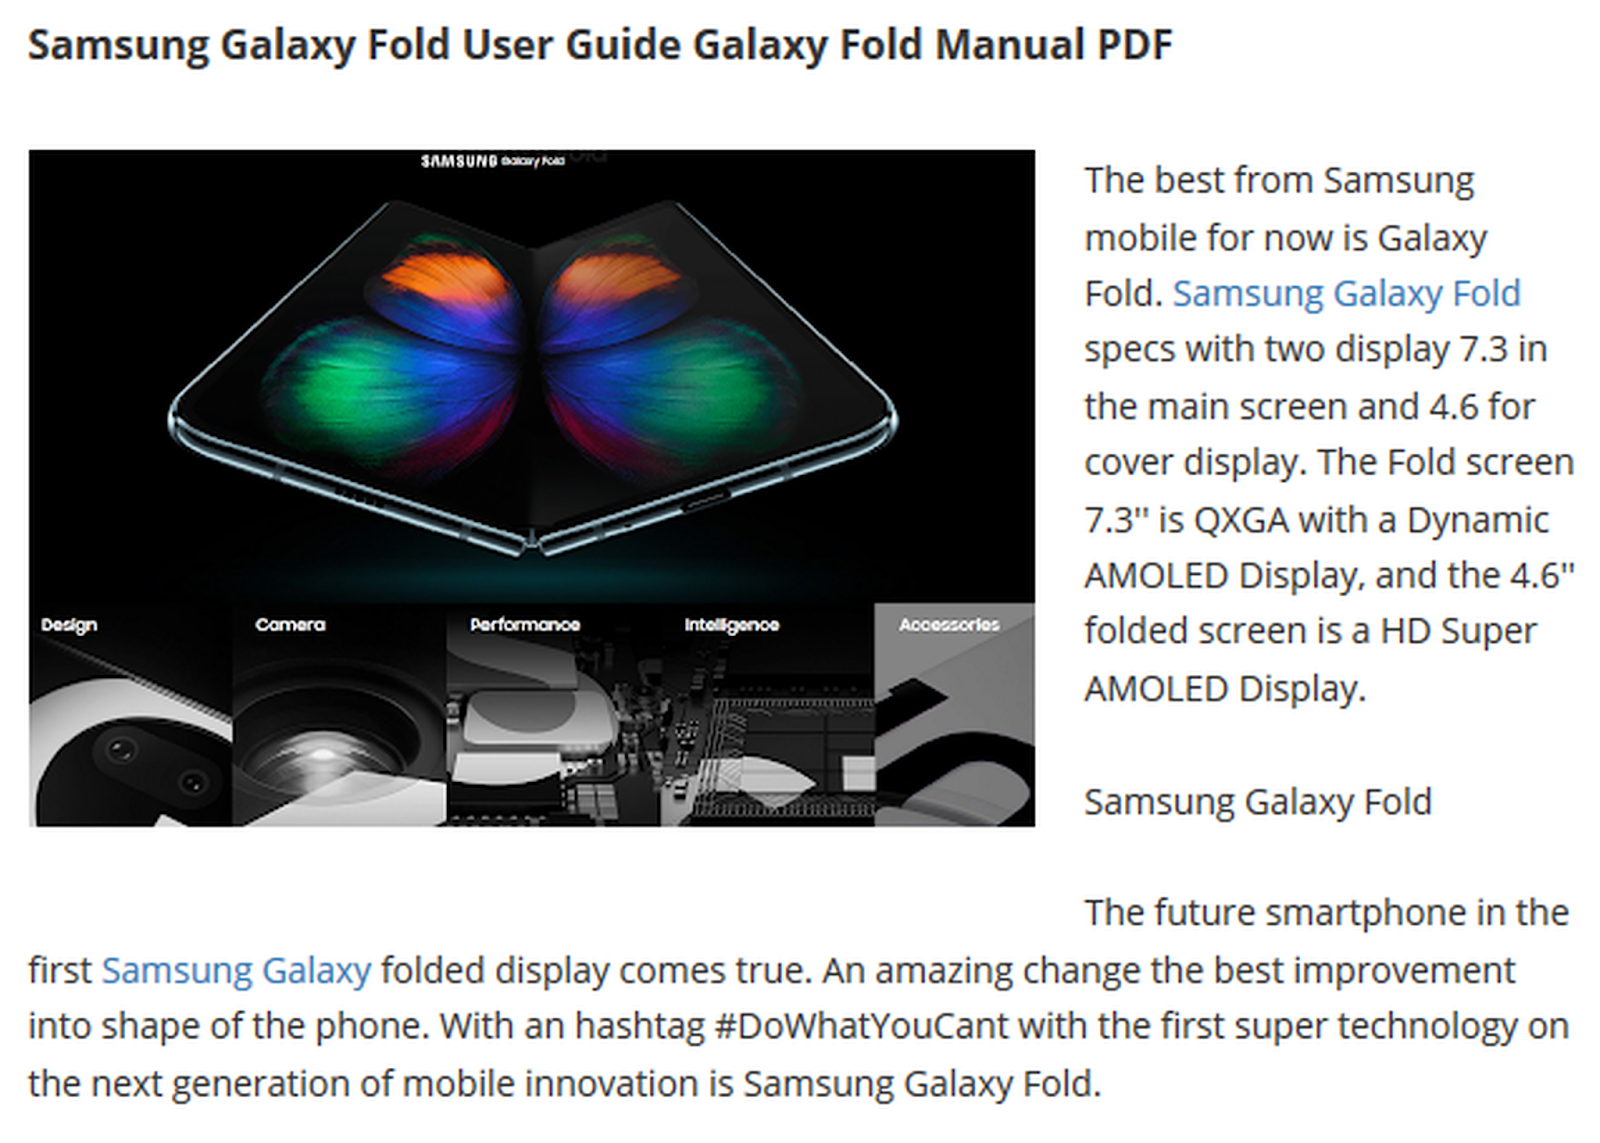 Samsung Galaxy Fold User Manual PDF